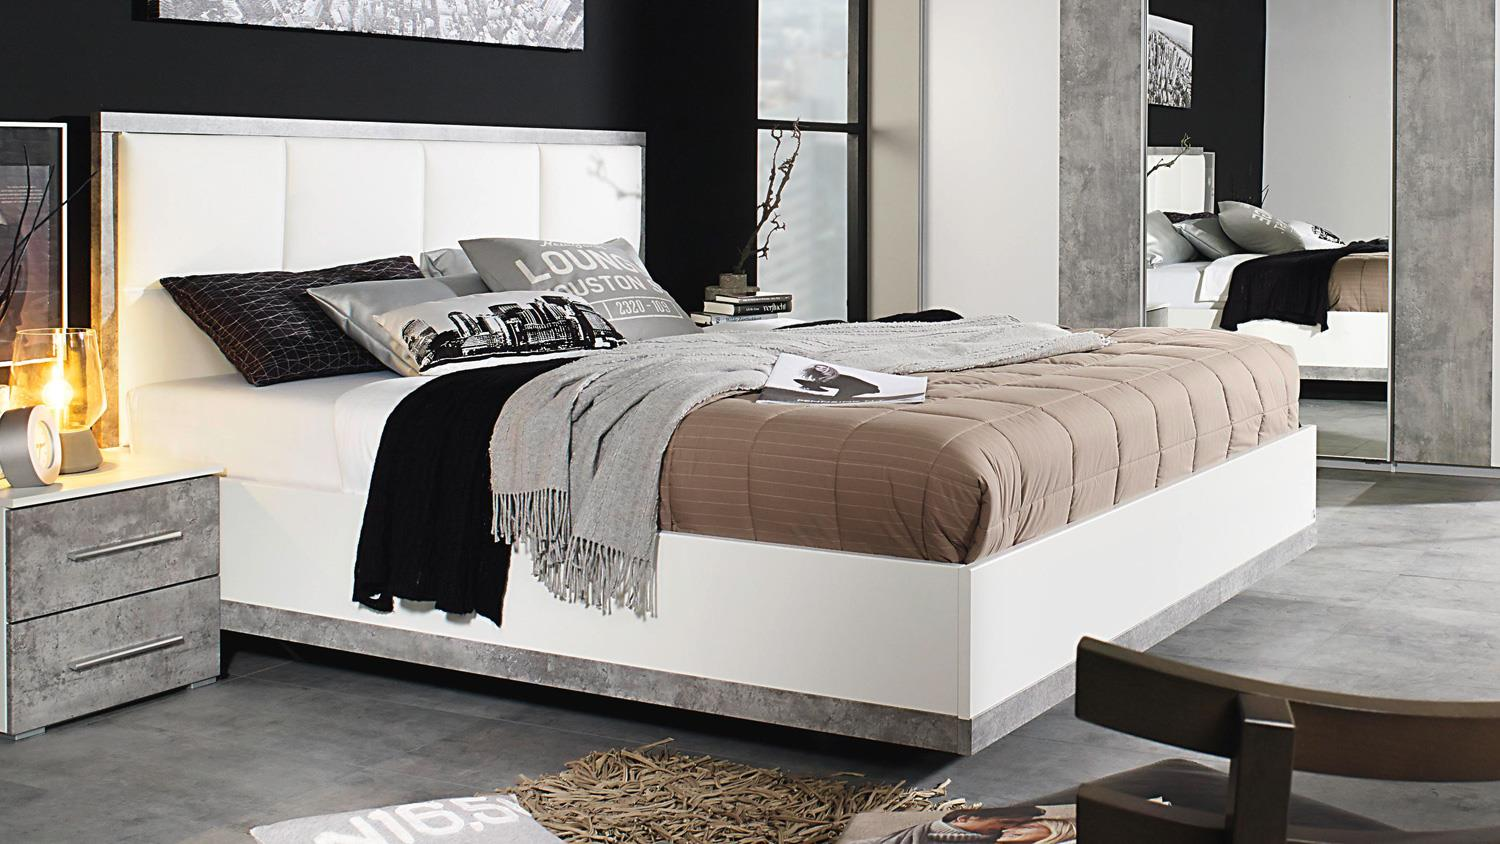 bett siegen bettgestell polsterbett in wei stone grau 180x200 cm. Black Bedroom Furniture Sets. Home Design Ideas